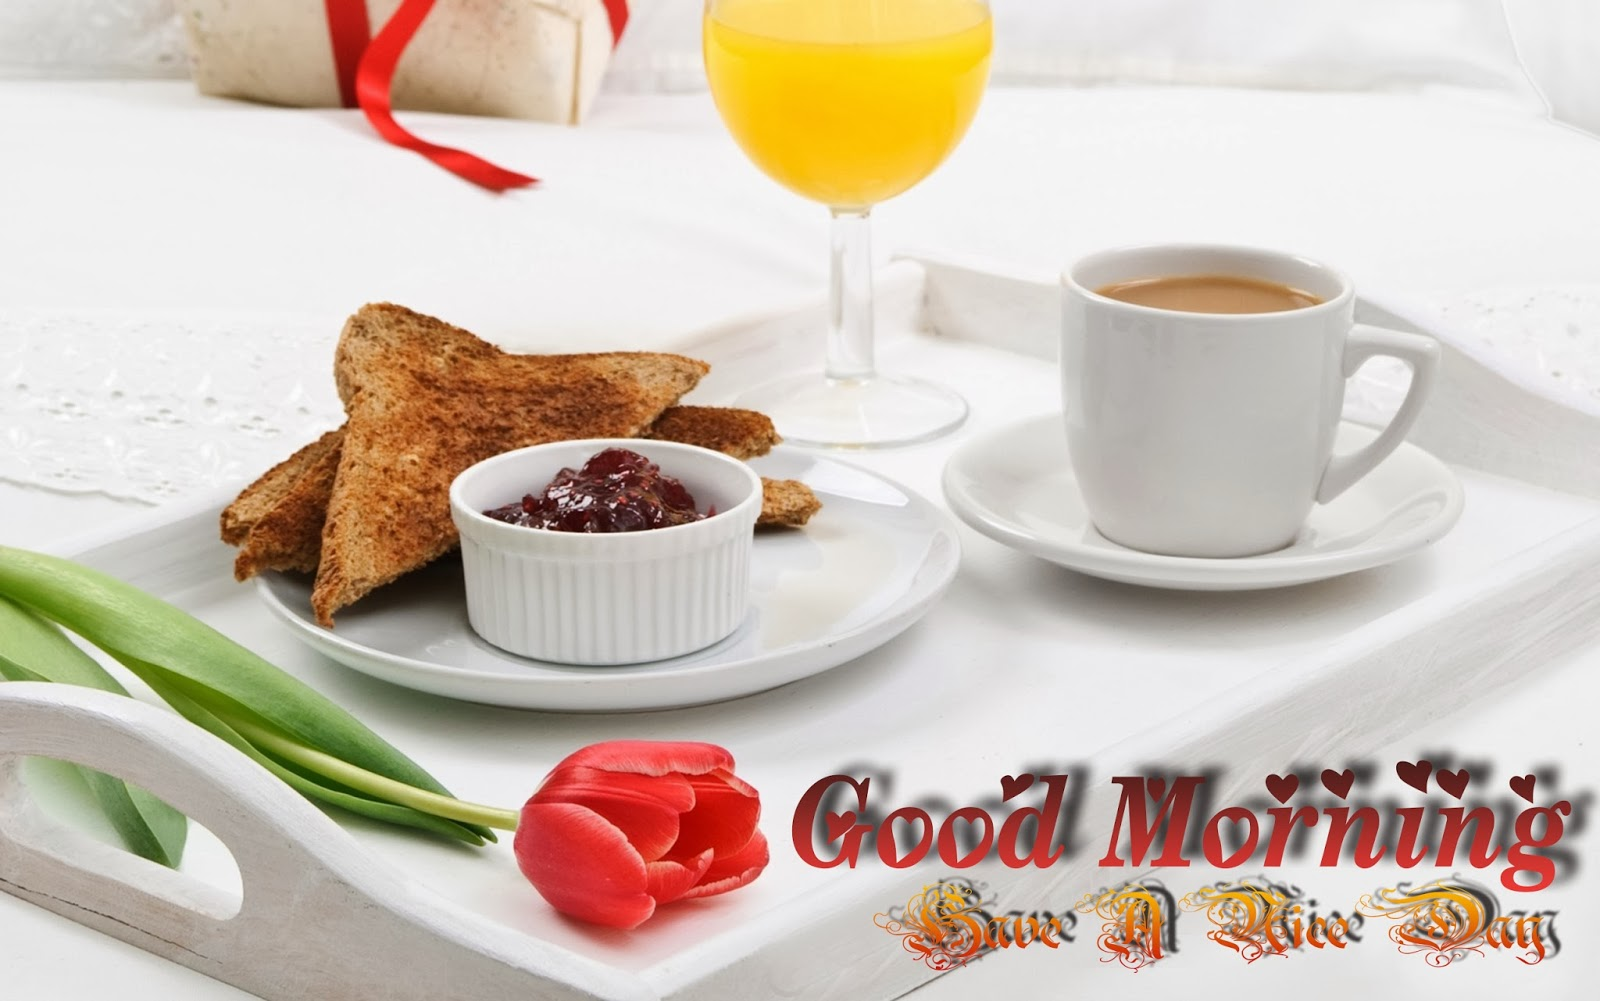 Good-Morning-Wishes-Wallpaper-With-Cup-Of-Tea-Image-HD-Wide